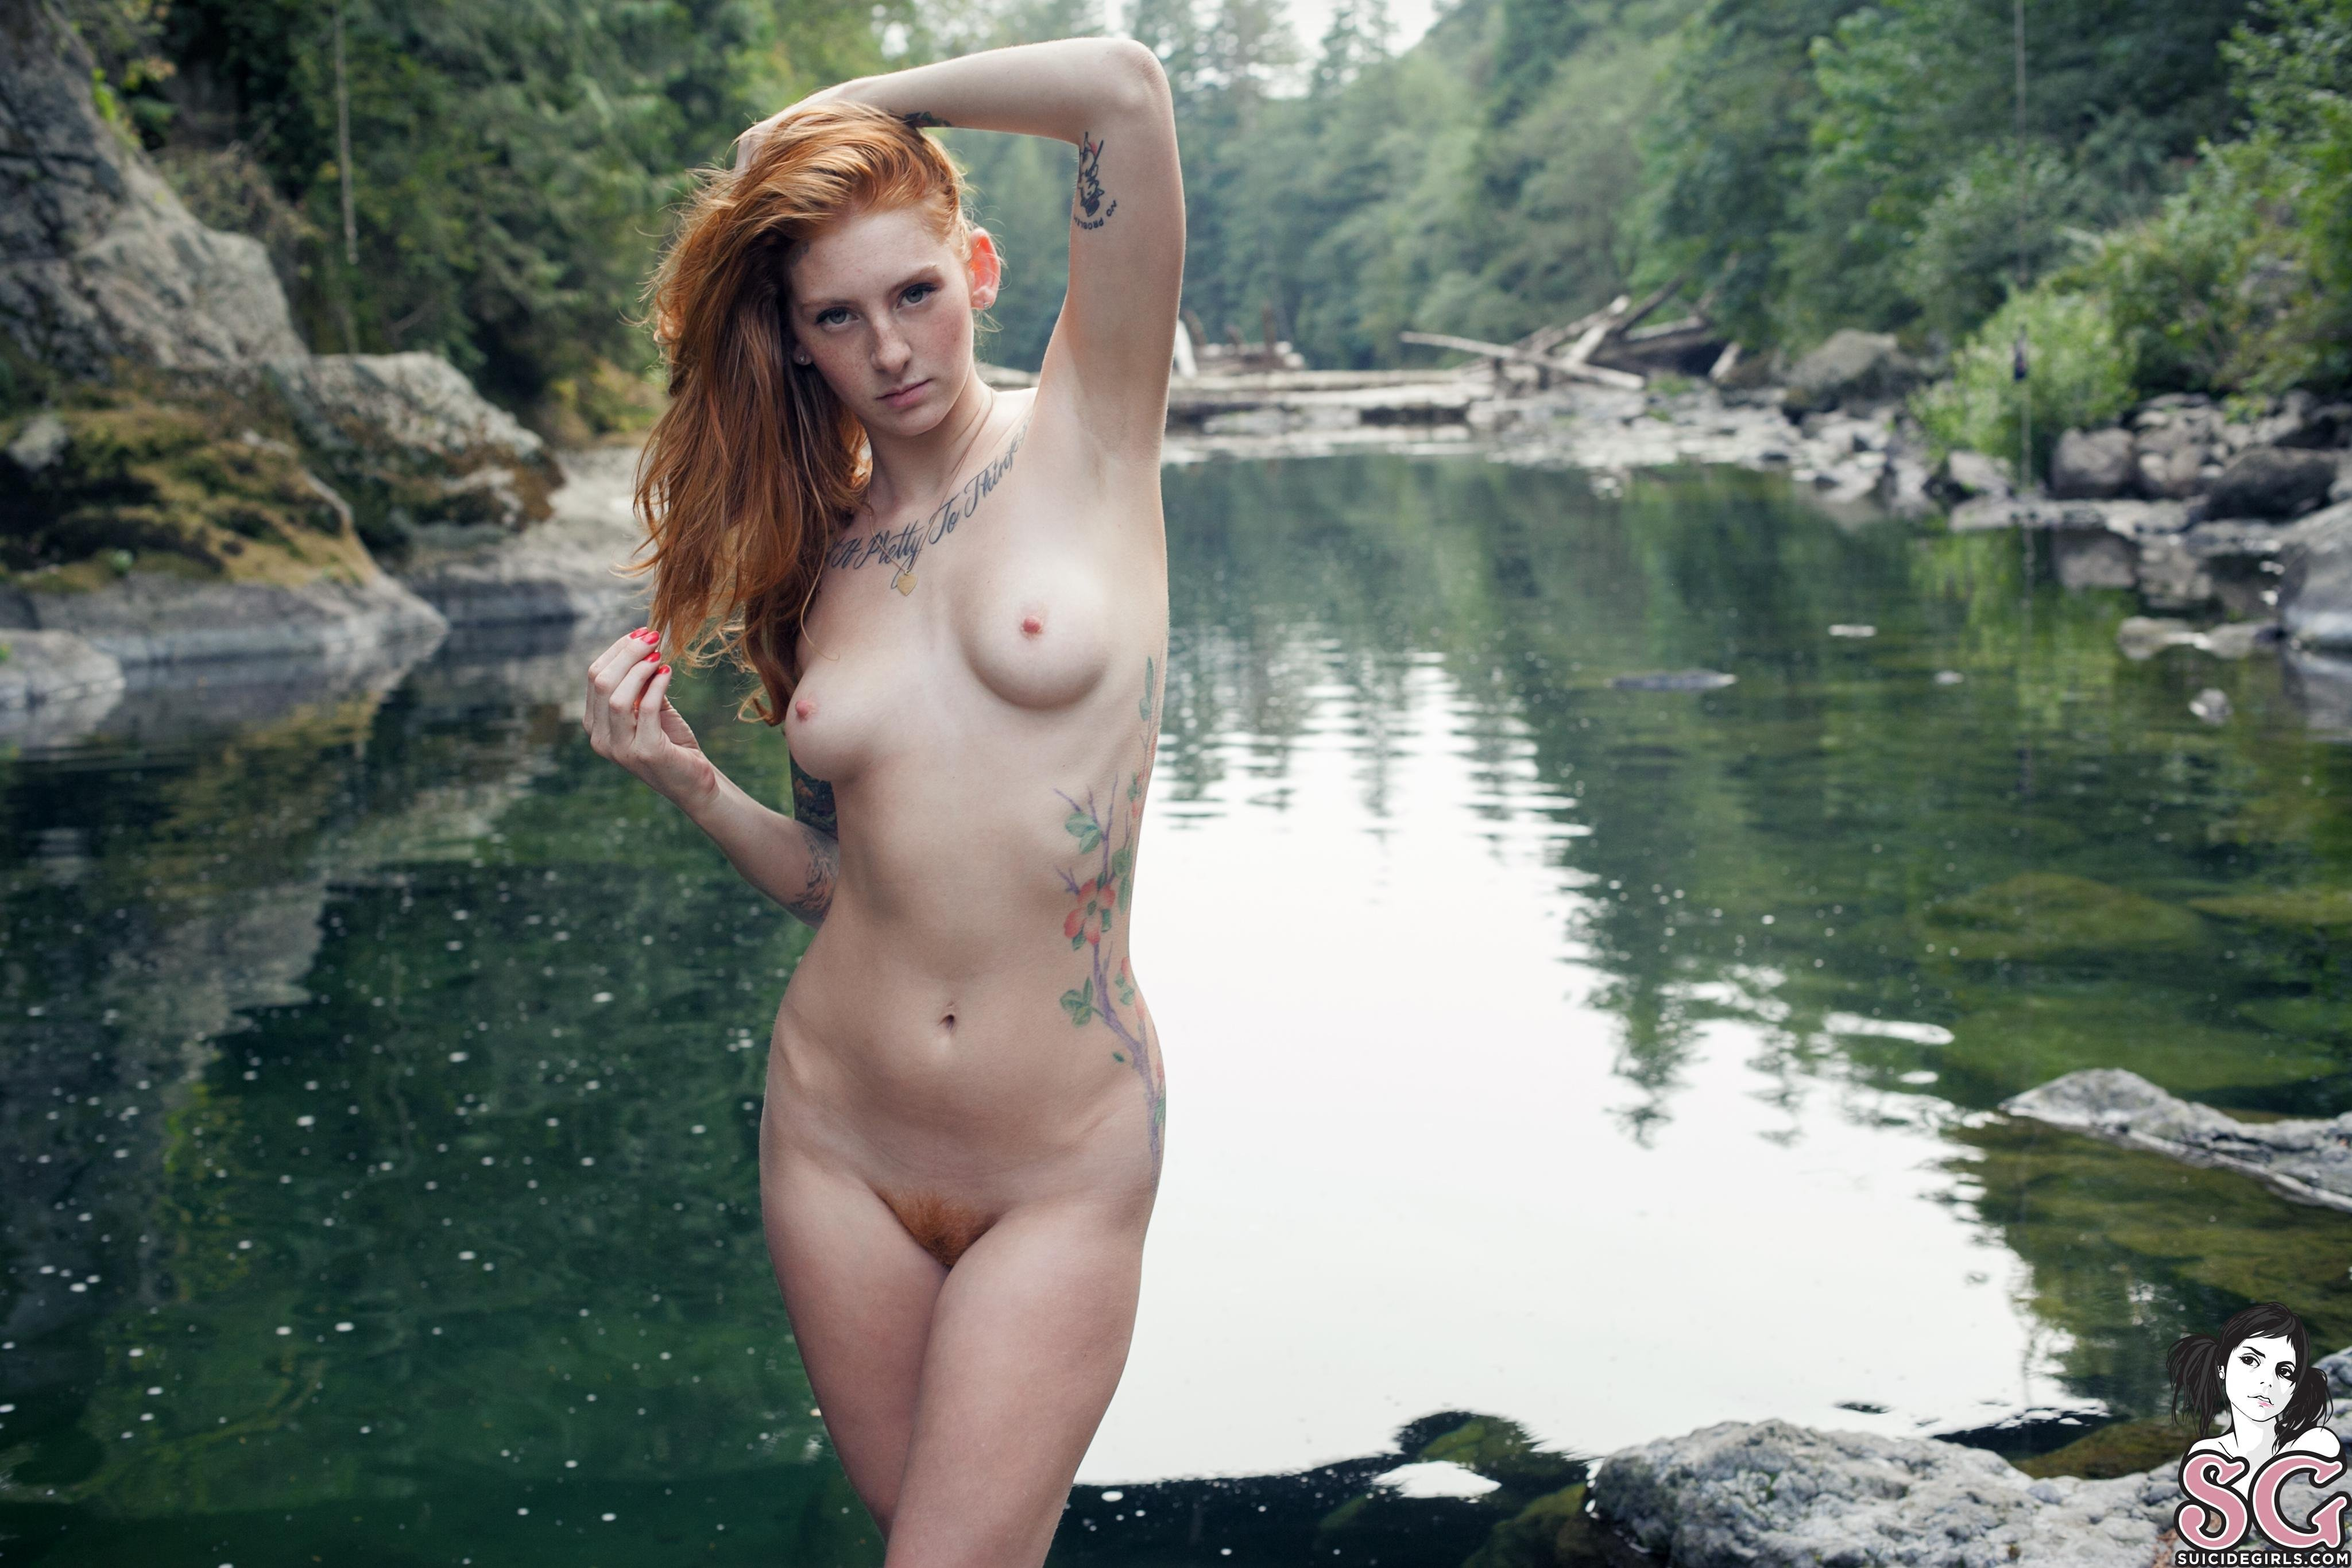 Download Wallpaper river sexy model tits girl breast nude ...